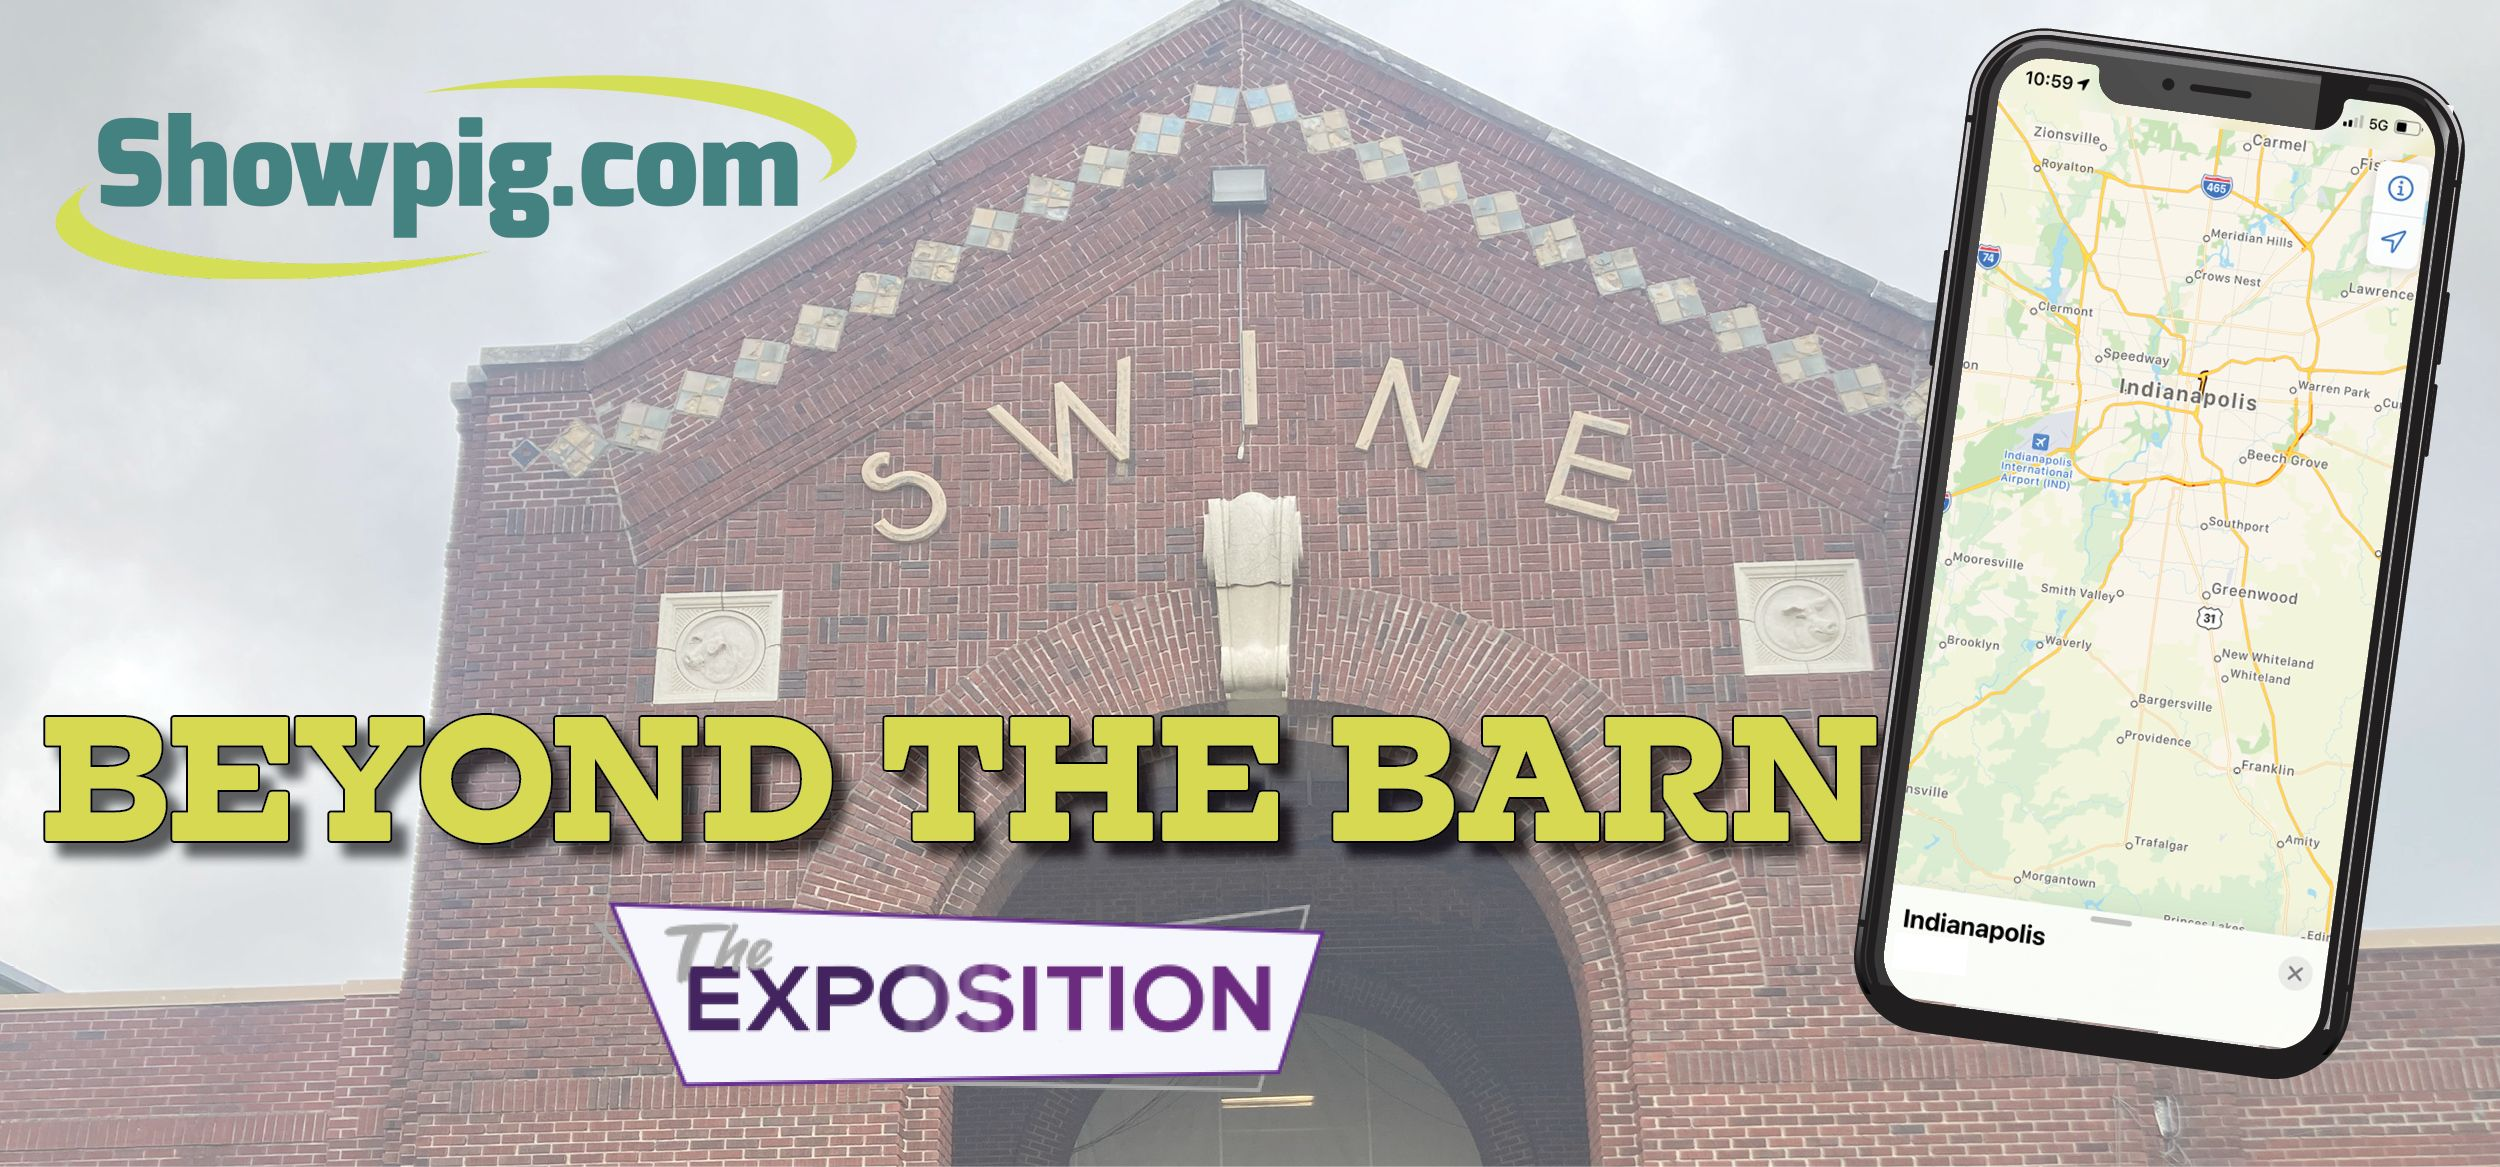 Featured image for the article titled Beyond the Barn: Indianapolis, Indiana